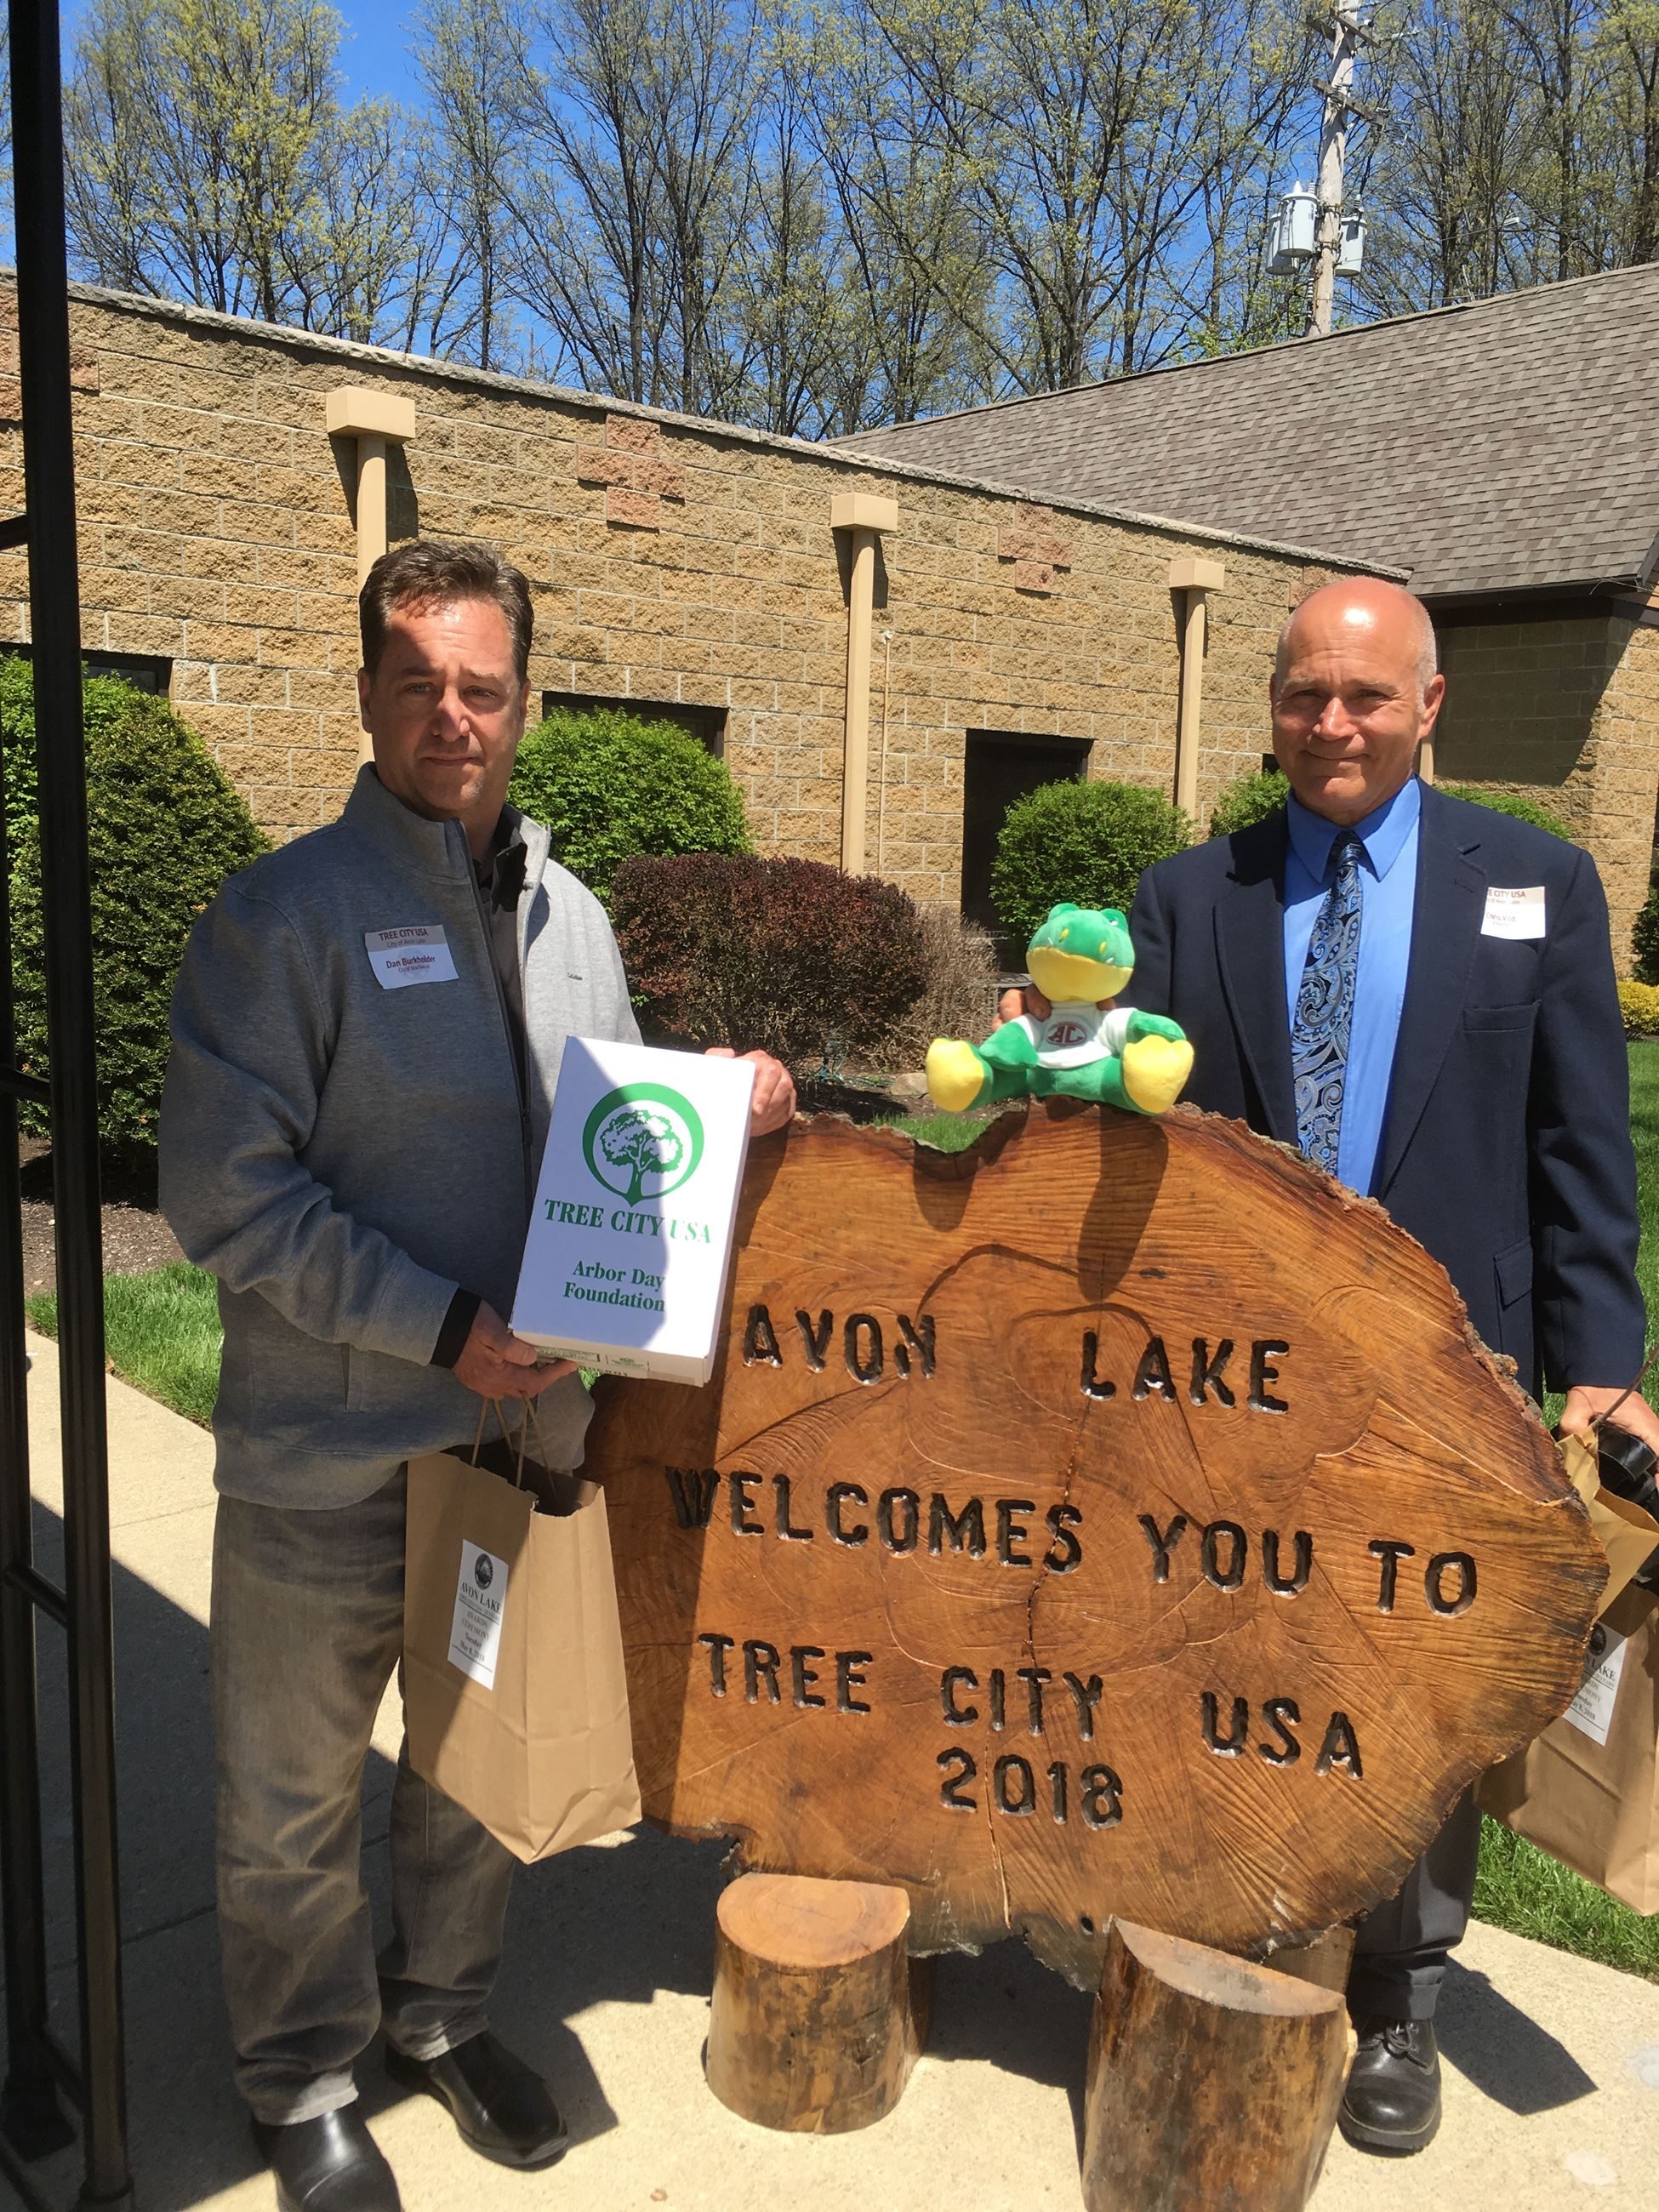 Dan Burkholder and Chris Vild are holding the 2018 Tree City USA award and a plush stuffed alligator